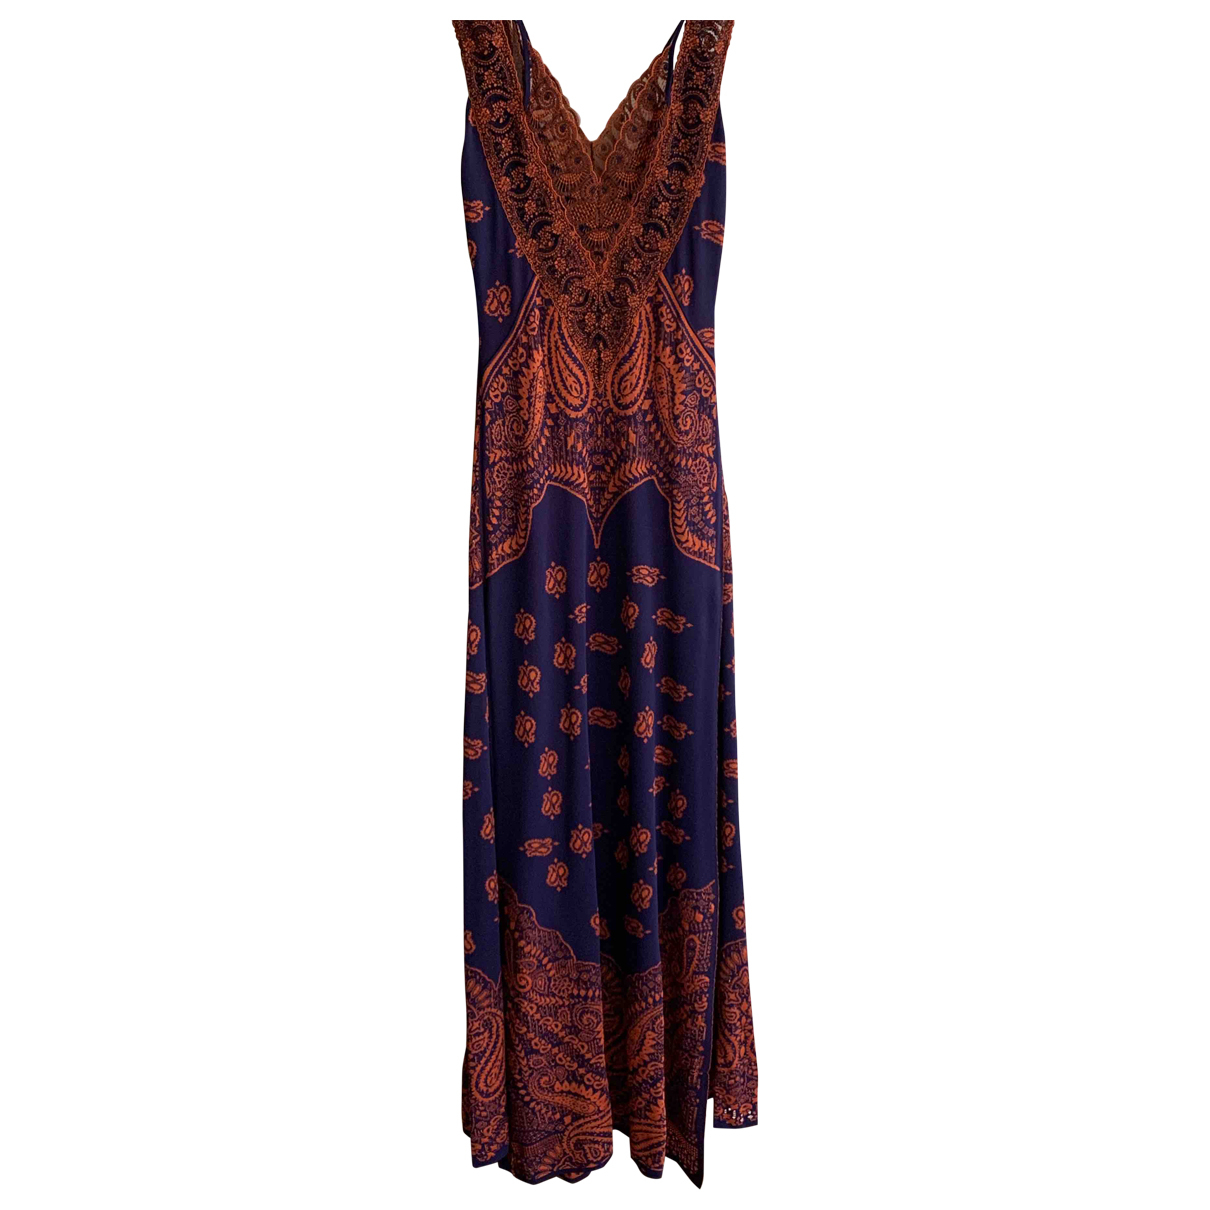 Roberto Cavalli \N Blue dress for Women 40 IT